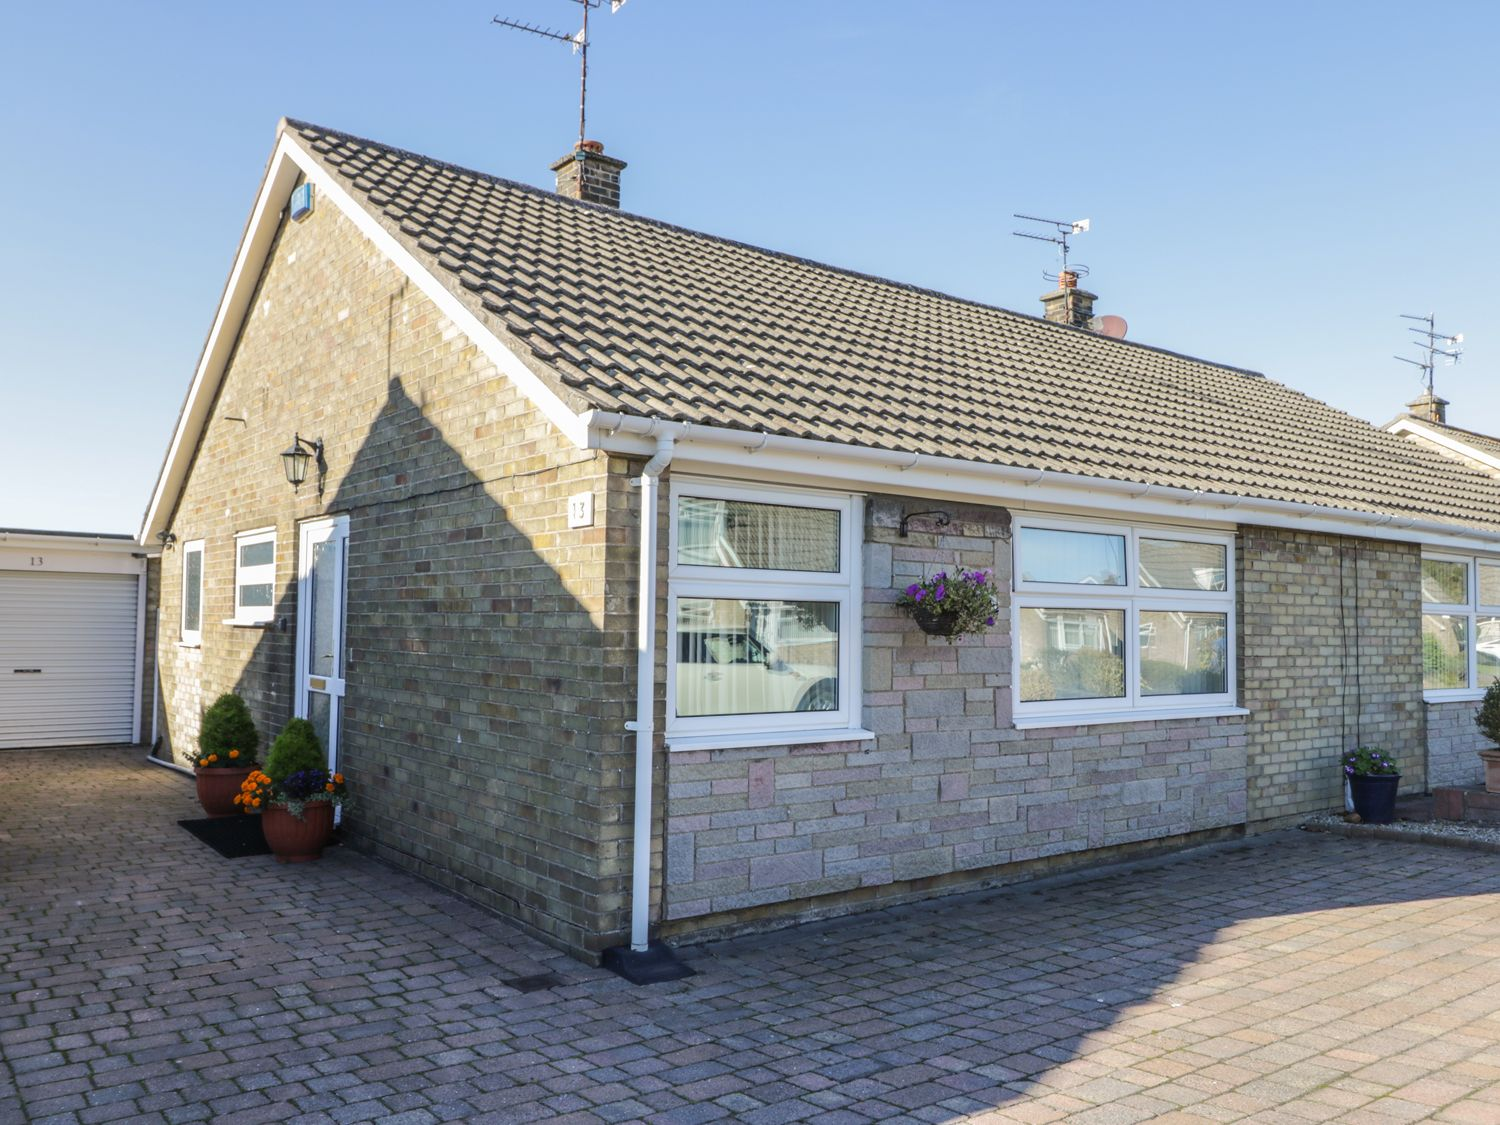 13 Danescroft - Whitby & North Yorkshire - 996276 - photo 1